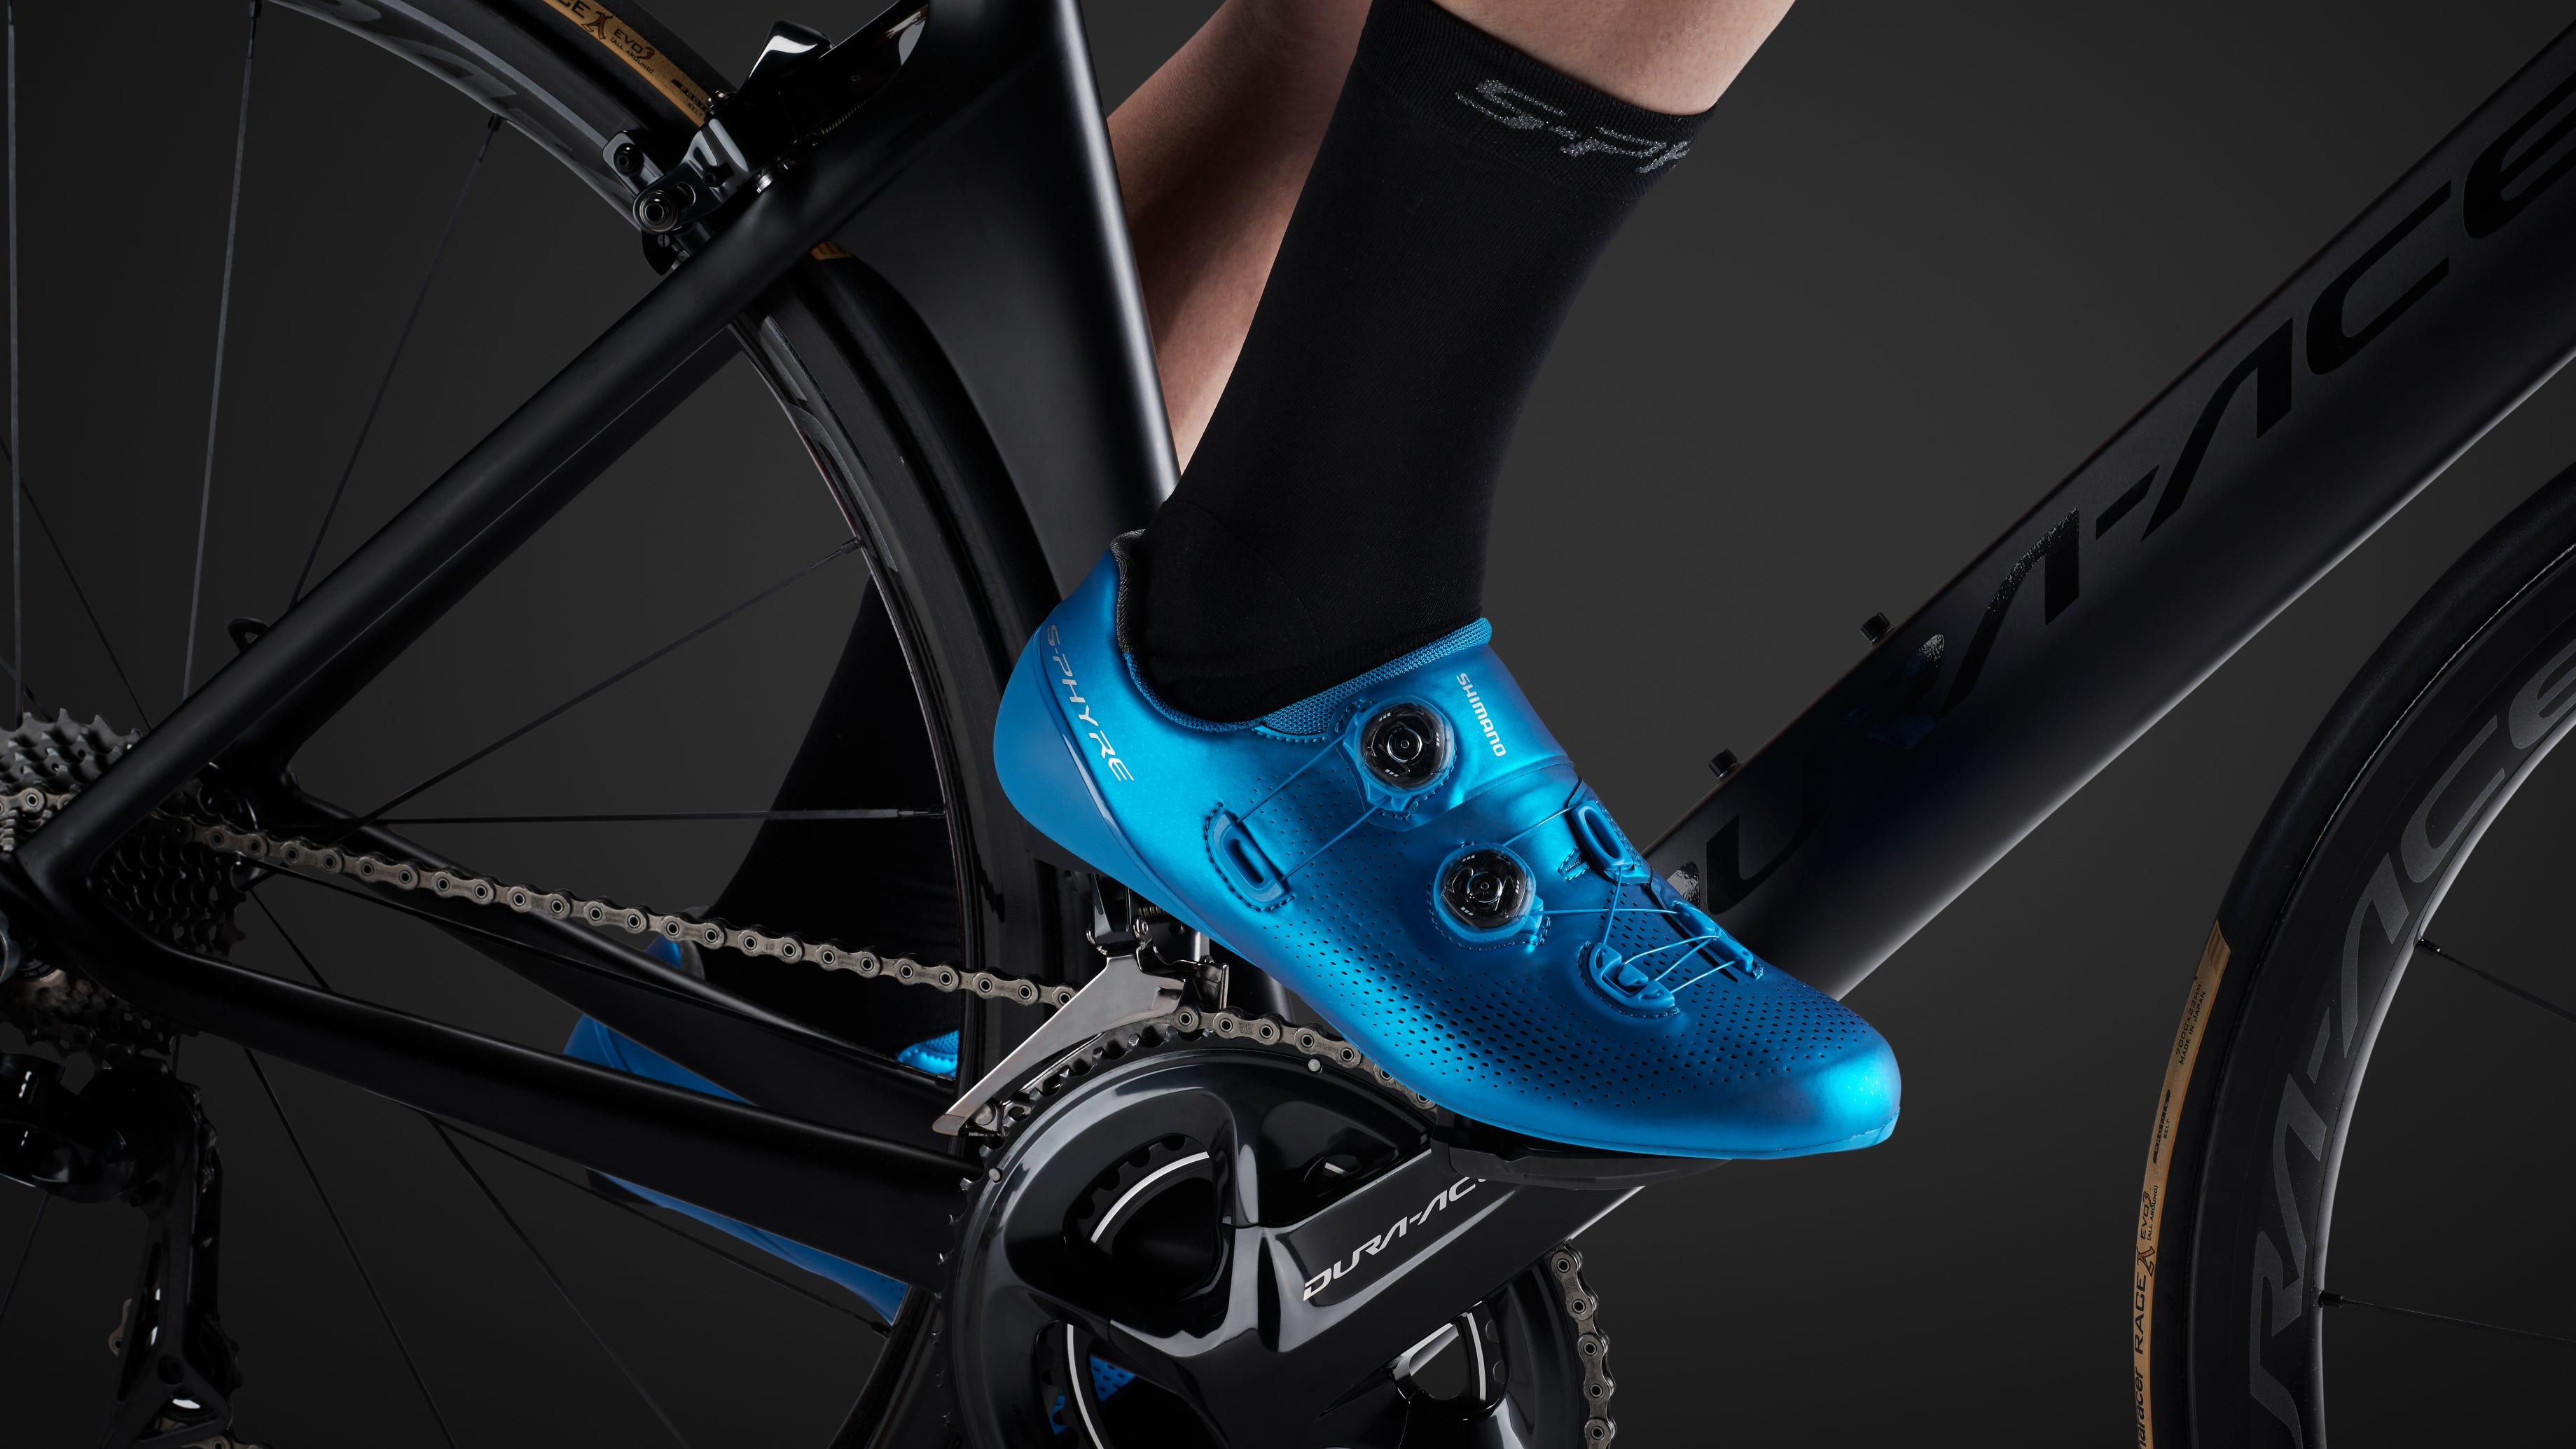 Shimano's new S-Phyre shoes are here and they're gorgeous